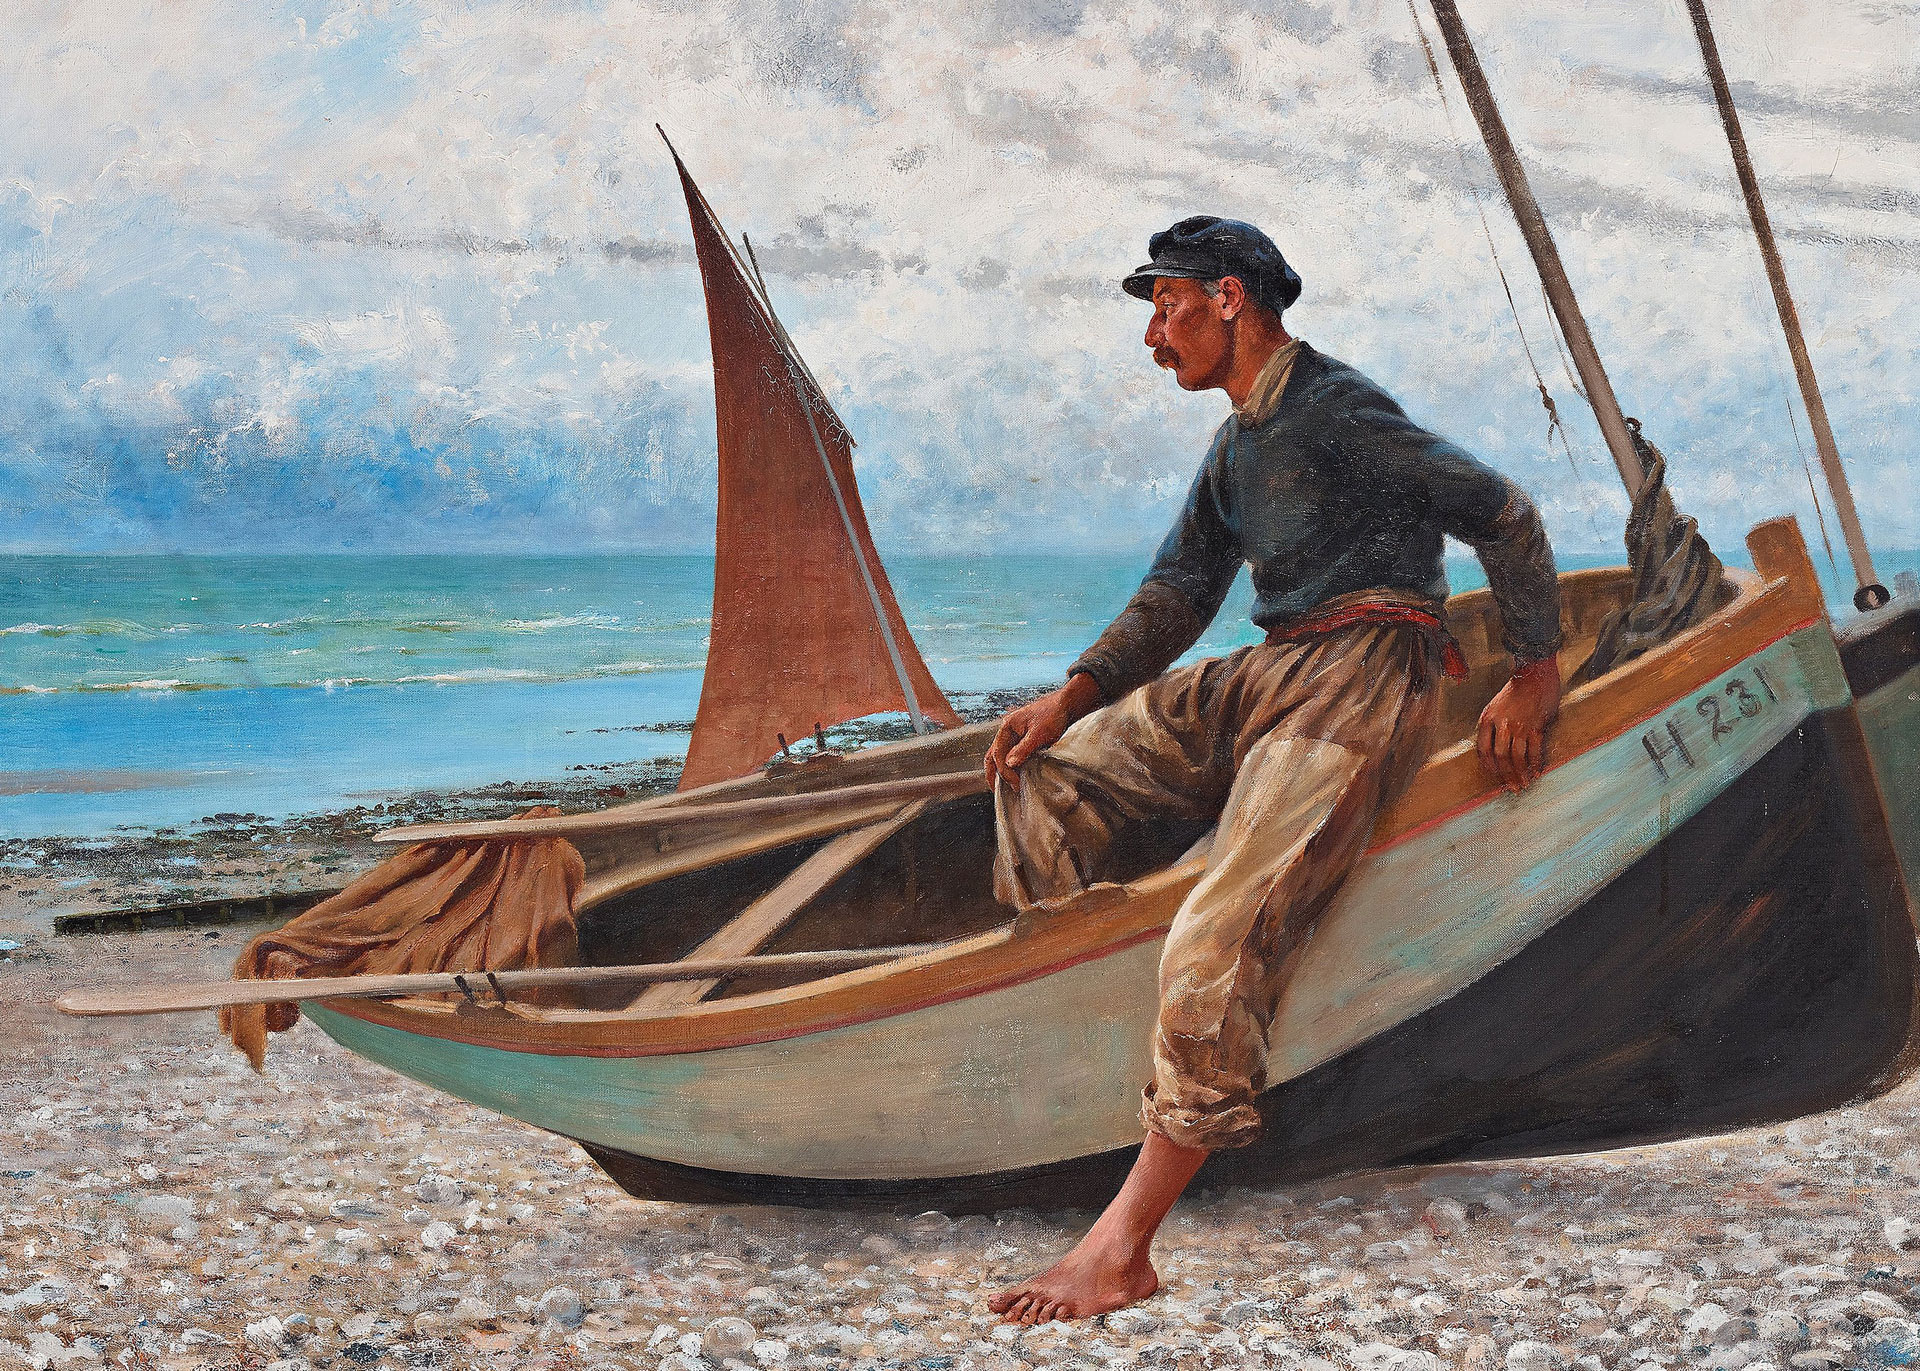 Puzzle Central The Sailor, painting by August Hagborg